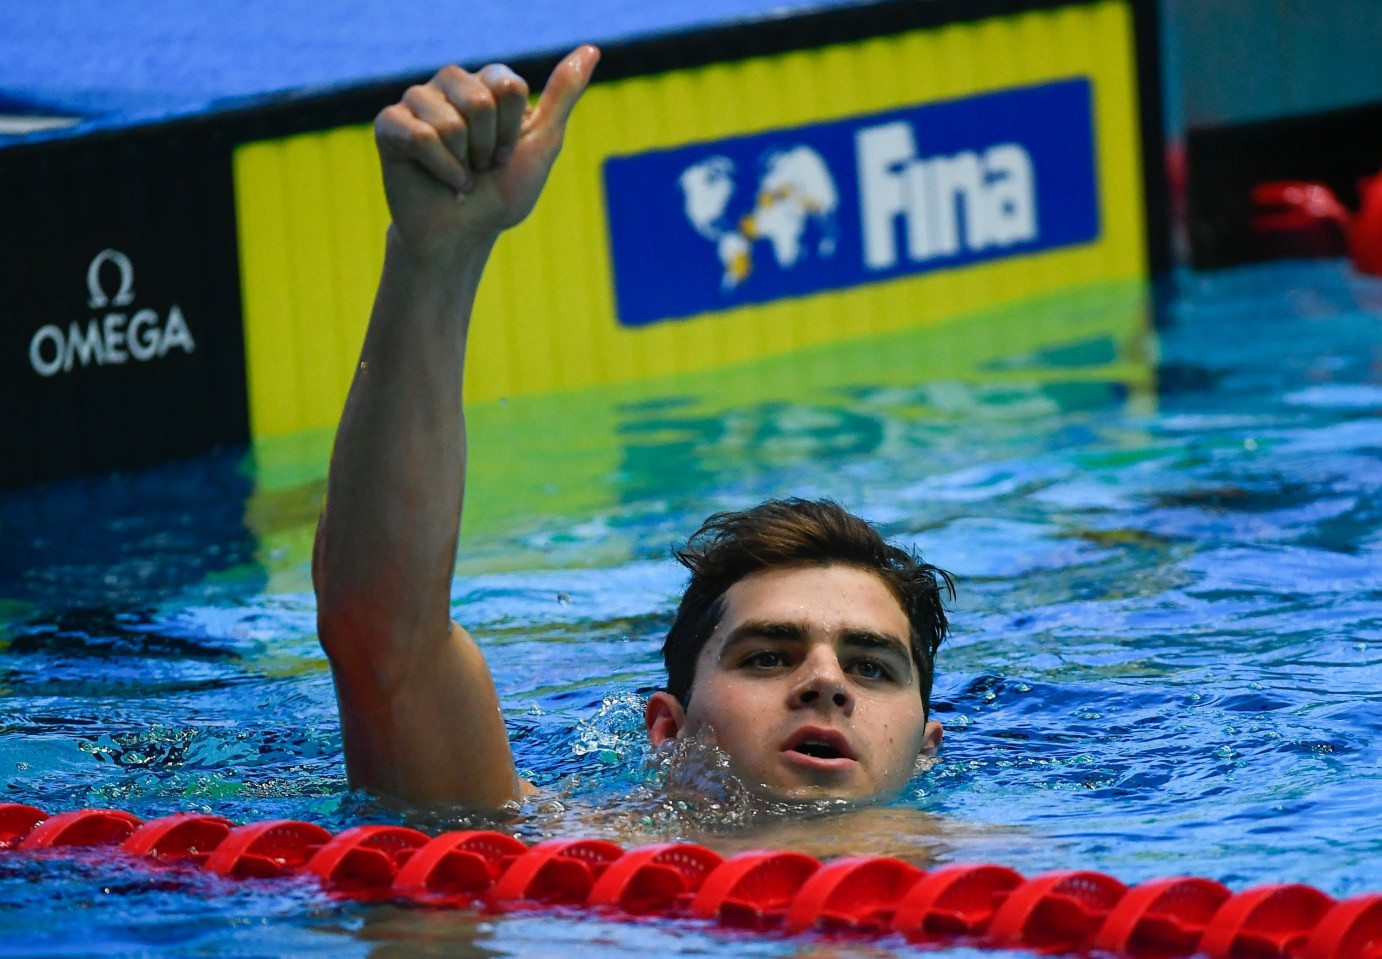 Andrew breaks another world record to win third gold medal at FINA World Junior Swimming Championships